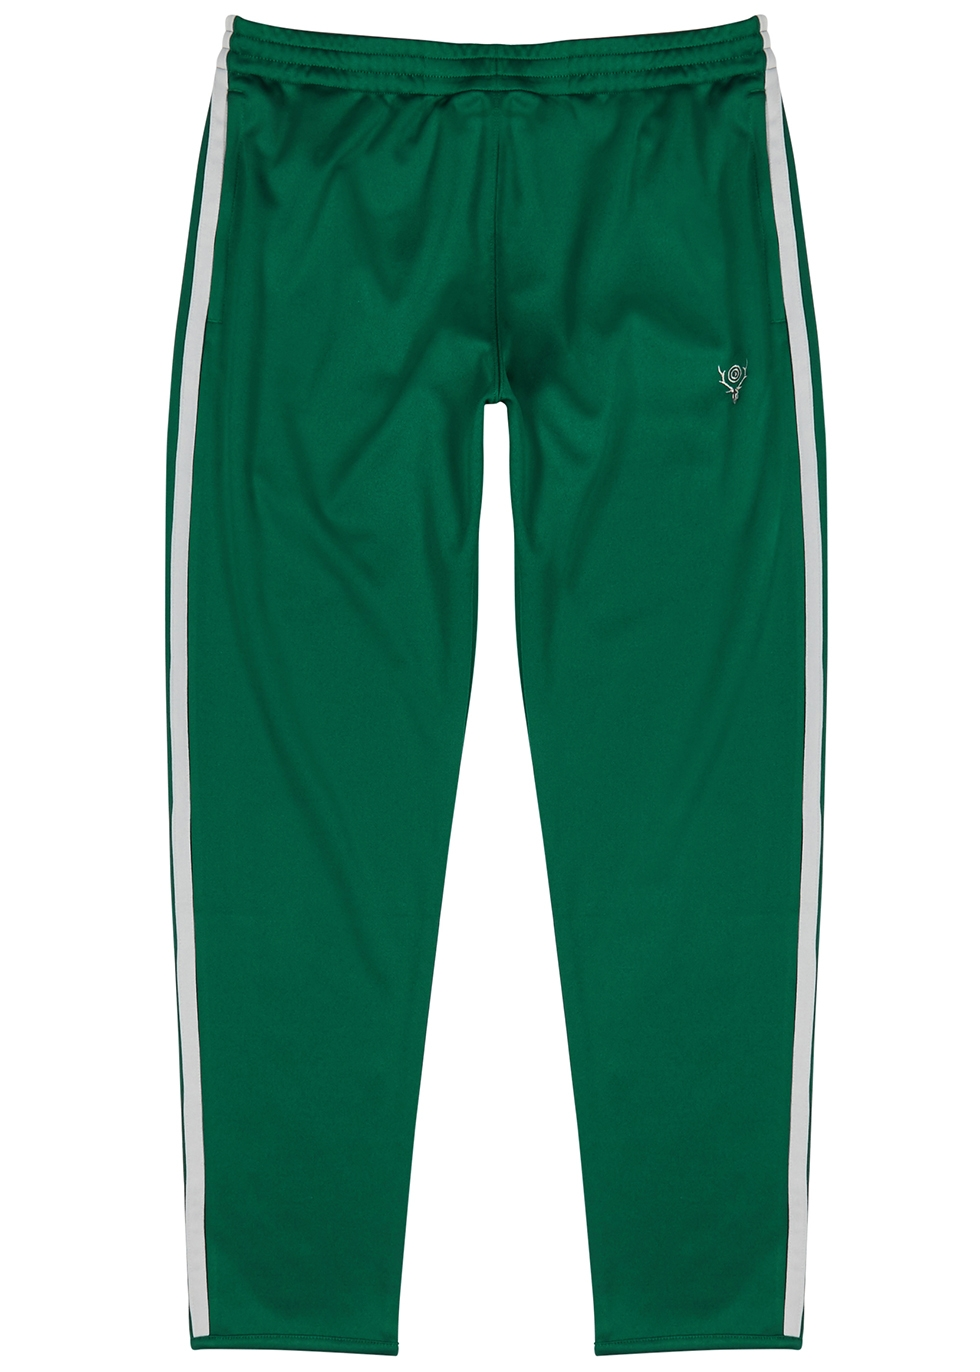 Trainer teal jersey sweatpants - South2 West8